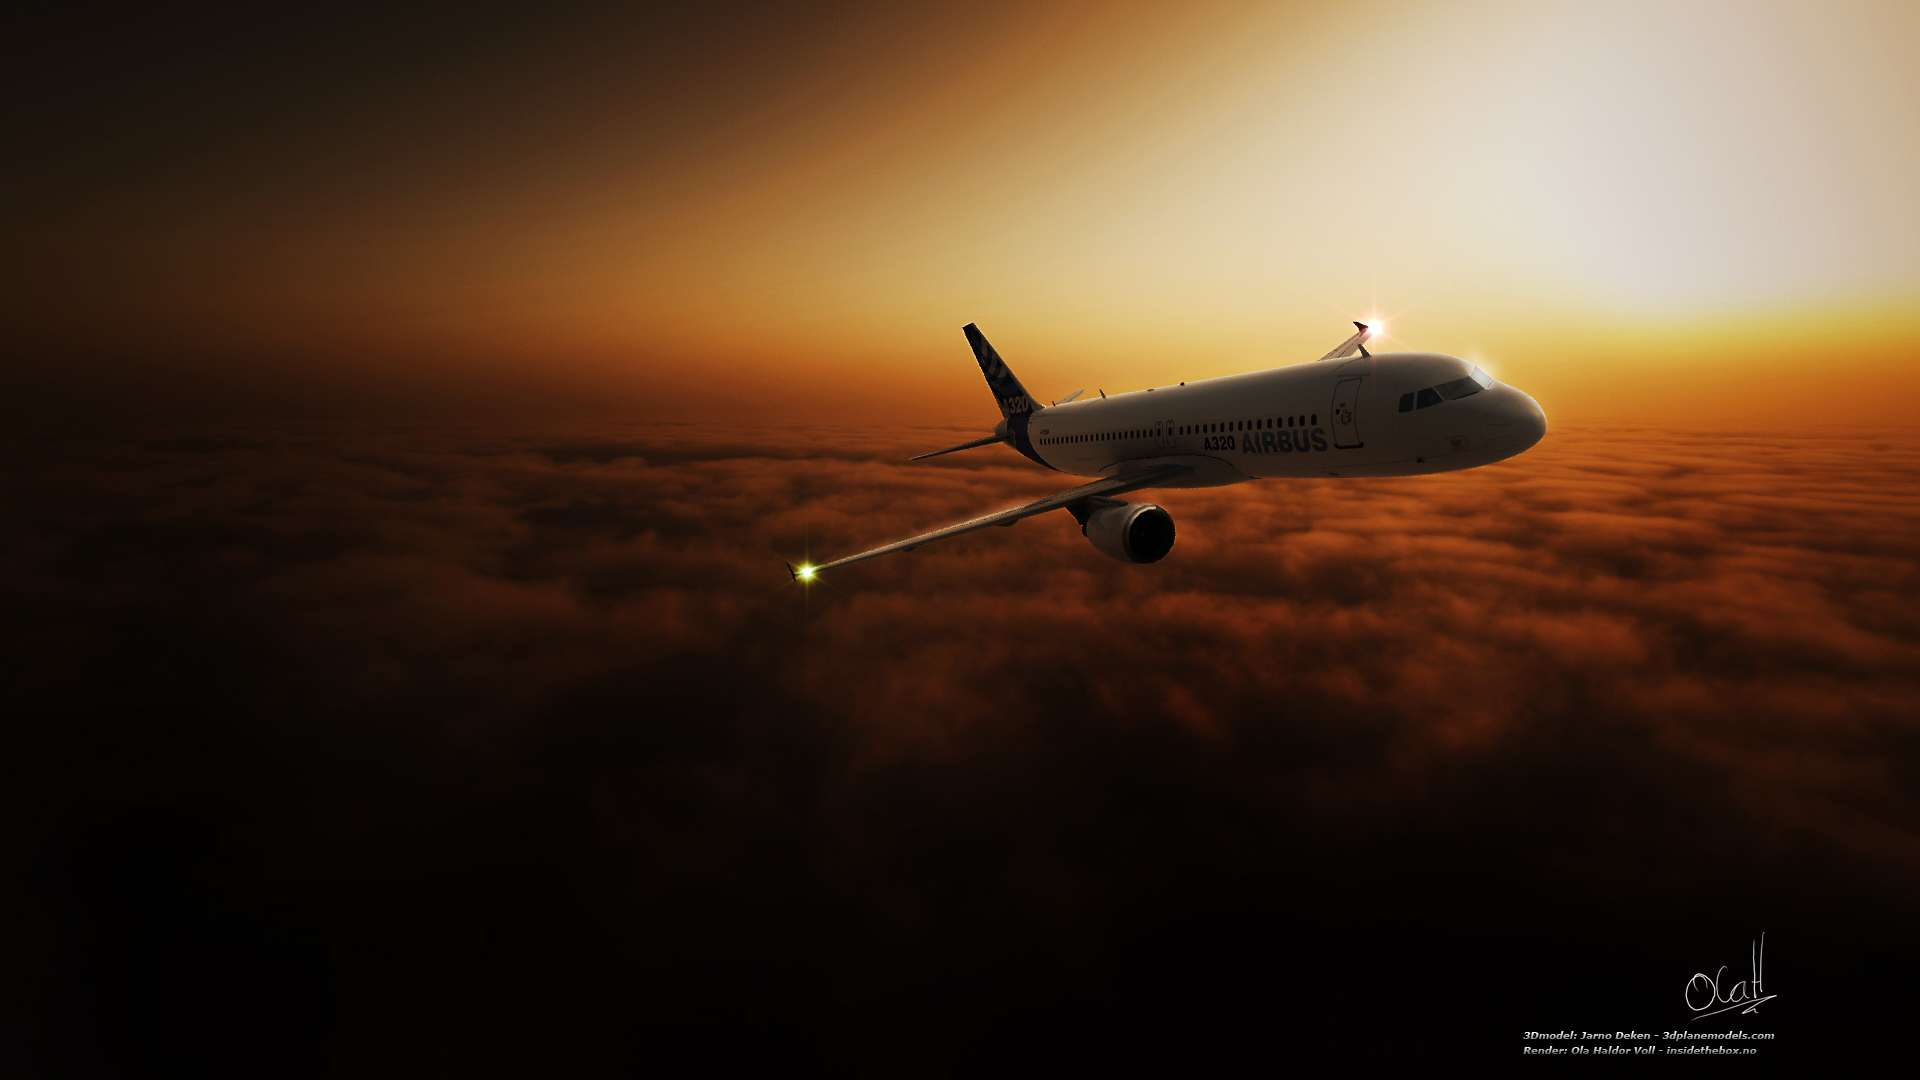 A320 3d Model HD Wallpaper FullHDWpp   Full HD Wallpapers 1920x1080 1920x1080